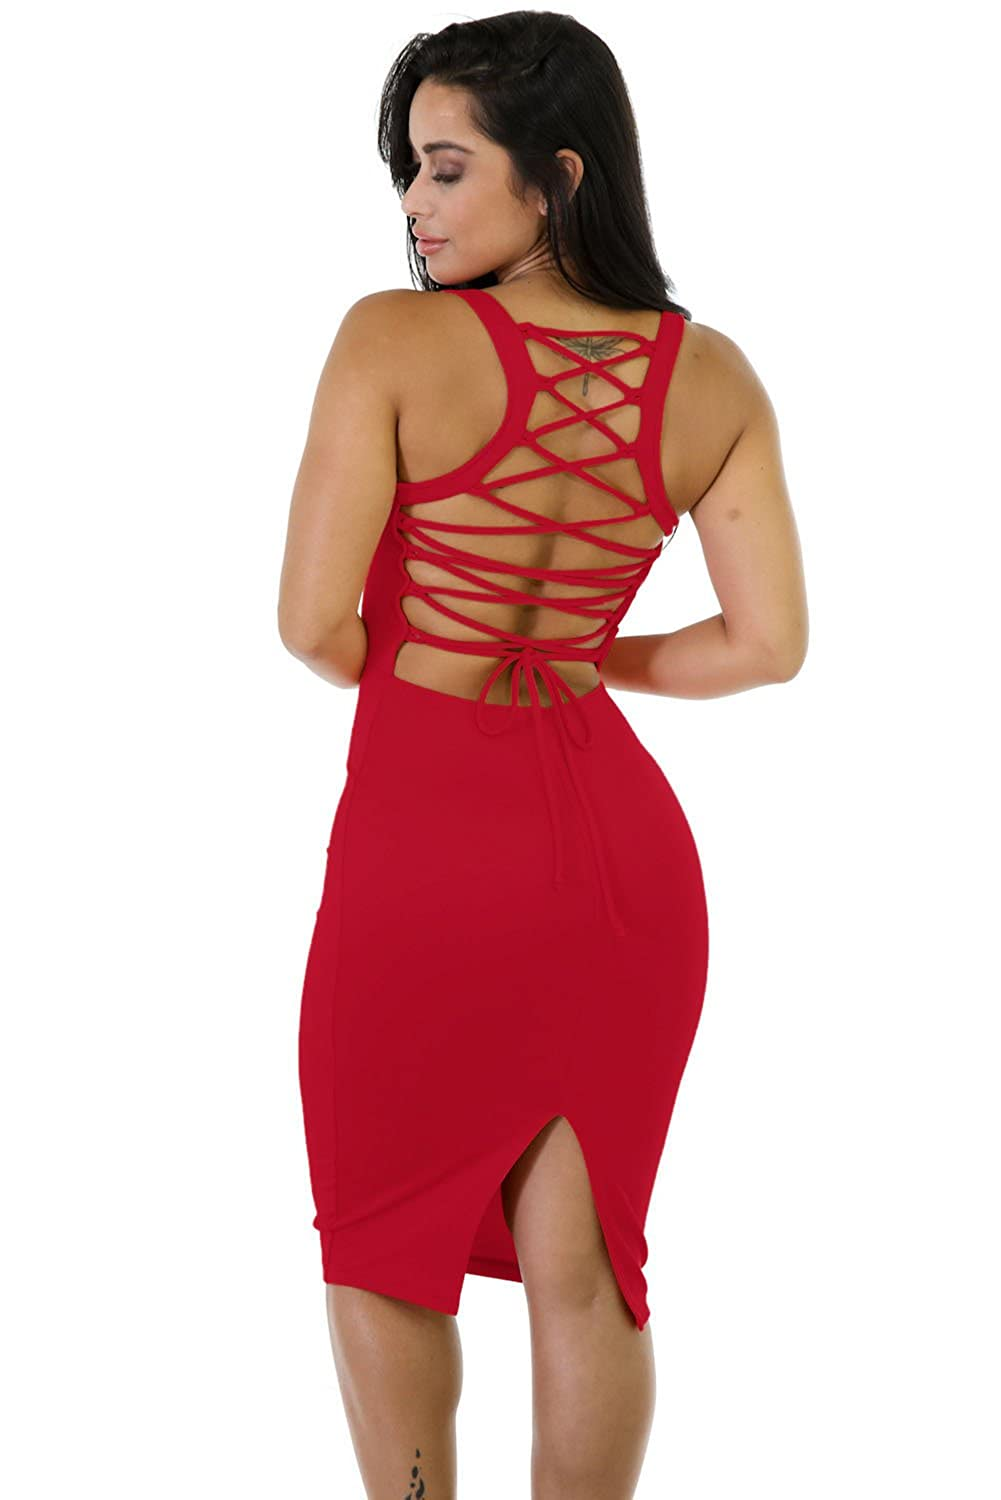 O&W Womens Solid Sexy Corset-Style Slit Back Lace Up Sleeveless Strappy Dress